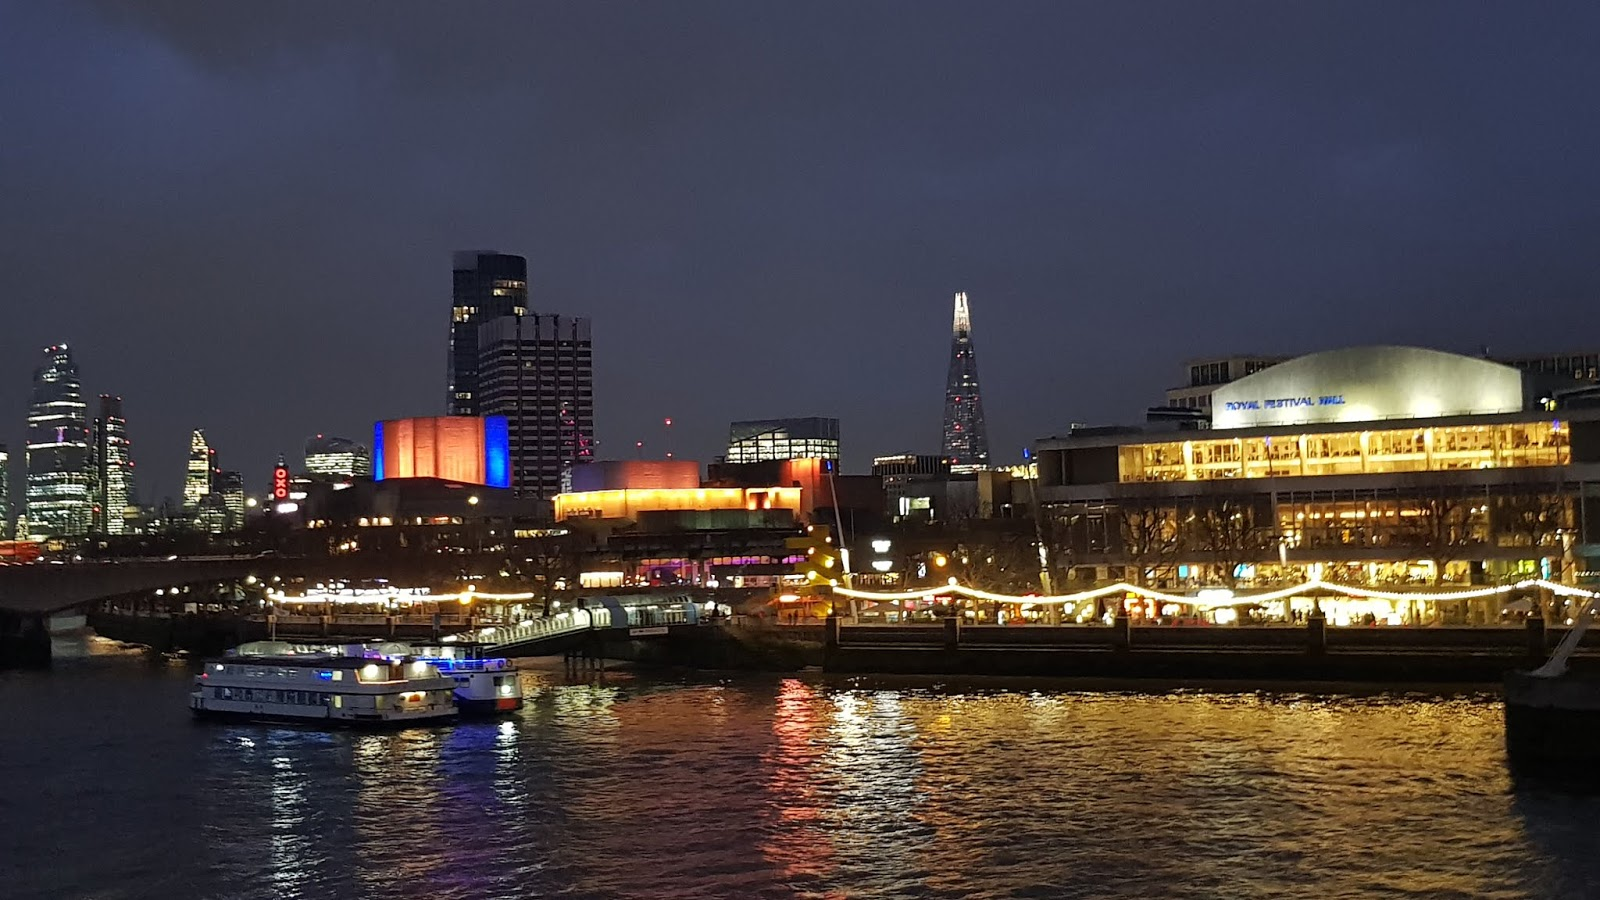 View of London  at night from the Golden Jubilee bridges